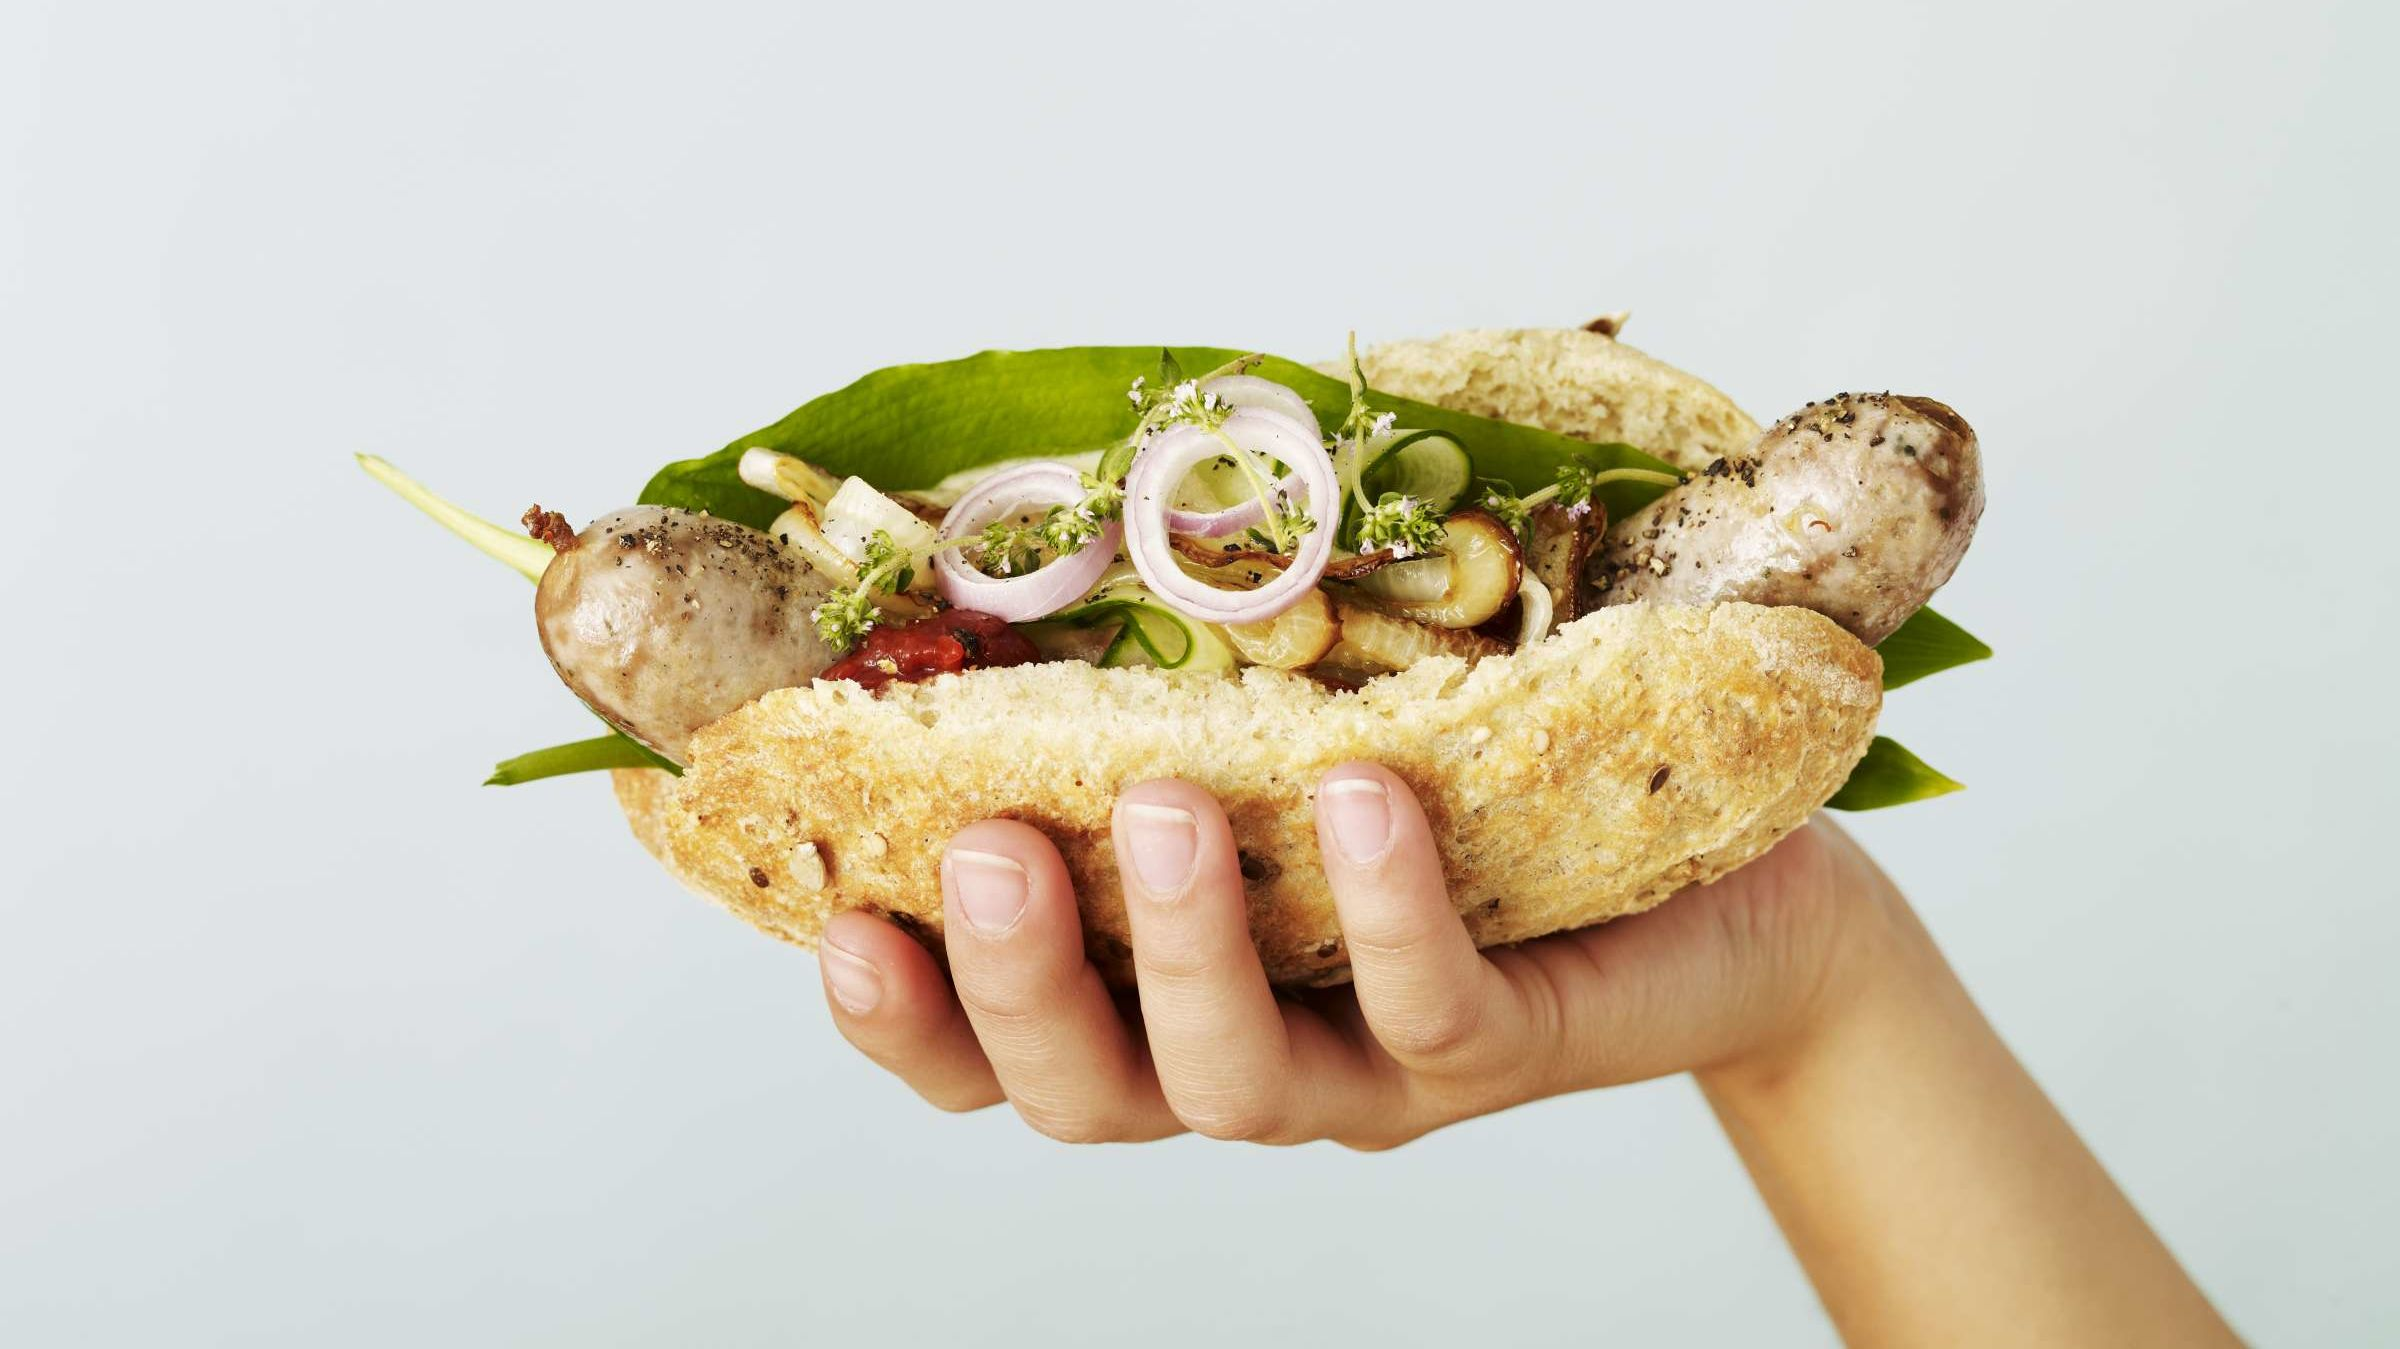 12 Delicious Hotdogs From Around the World